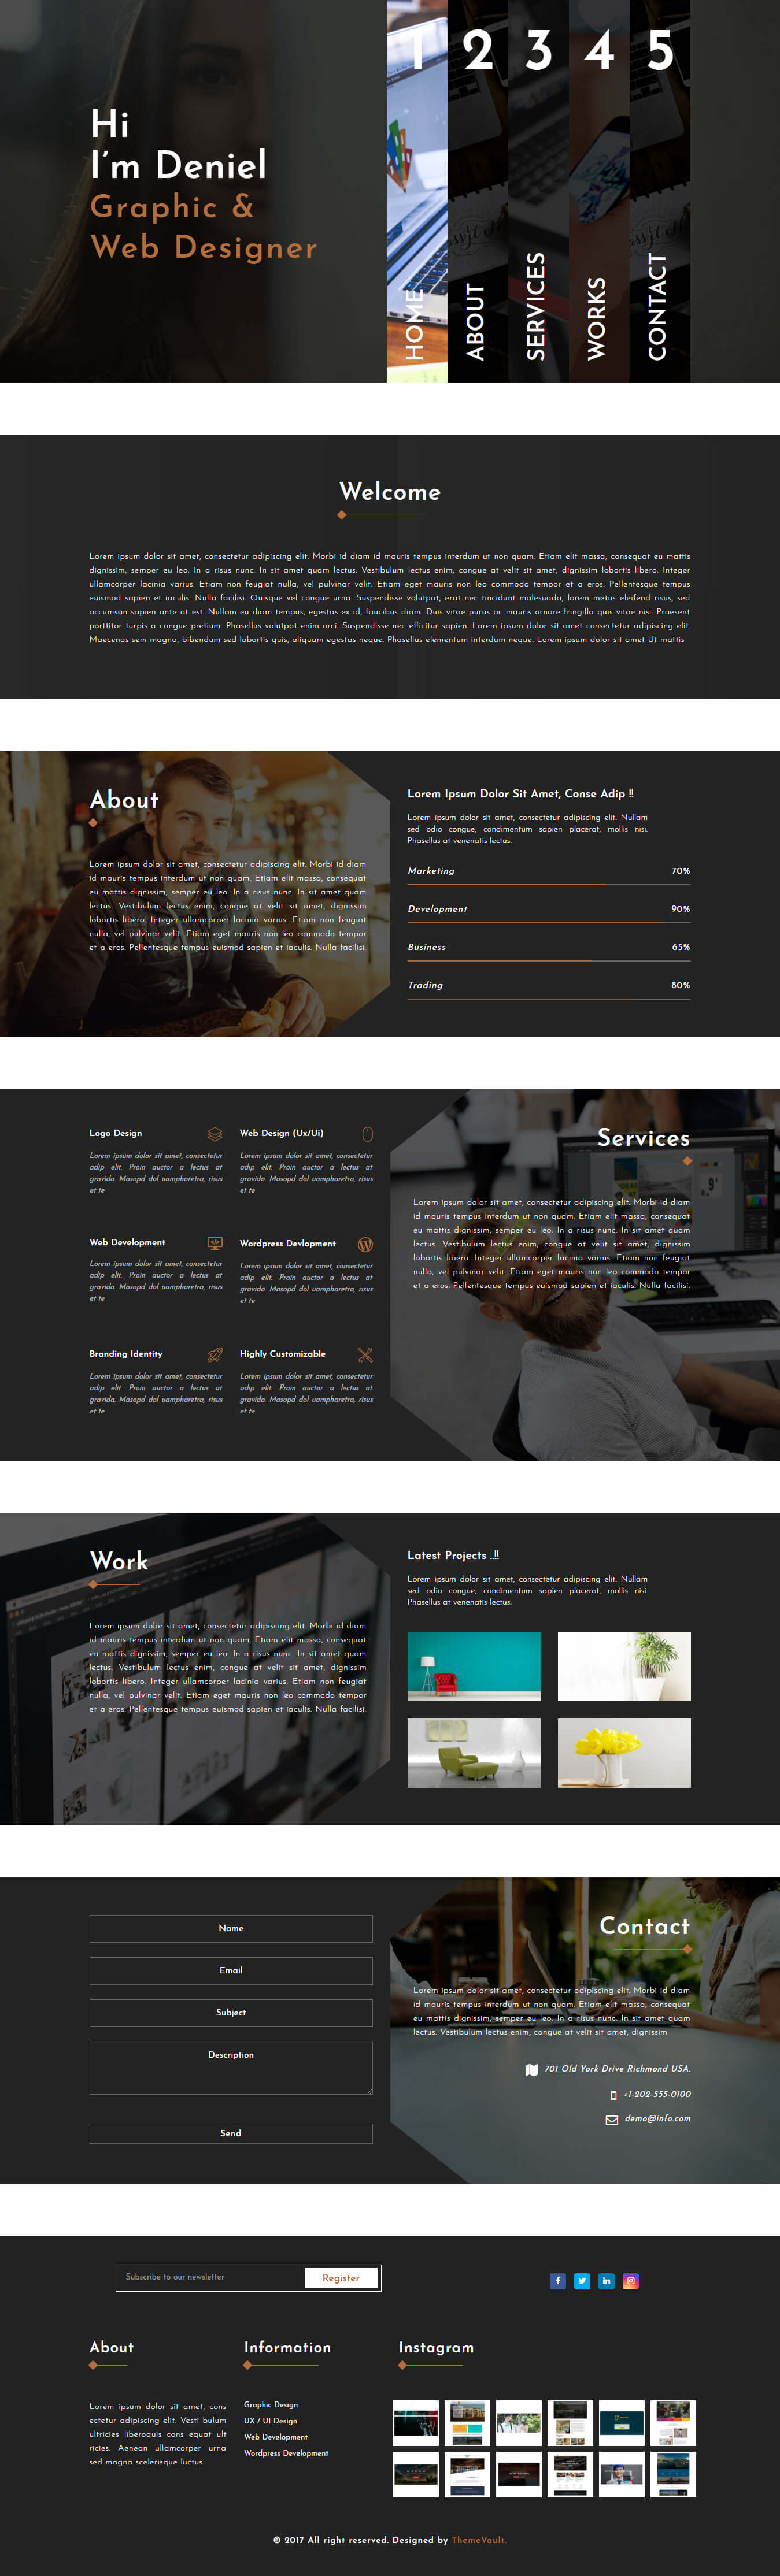 Deniel-Cruze – Single Page Portfolio Website Template Free